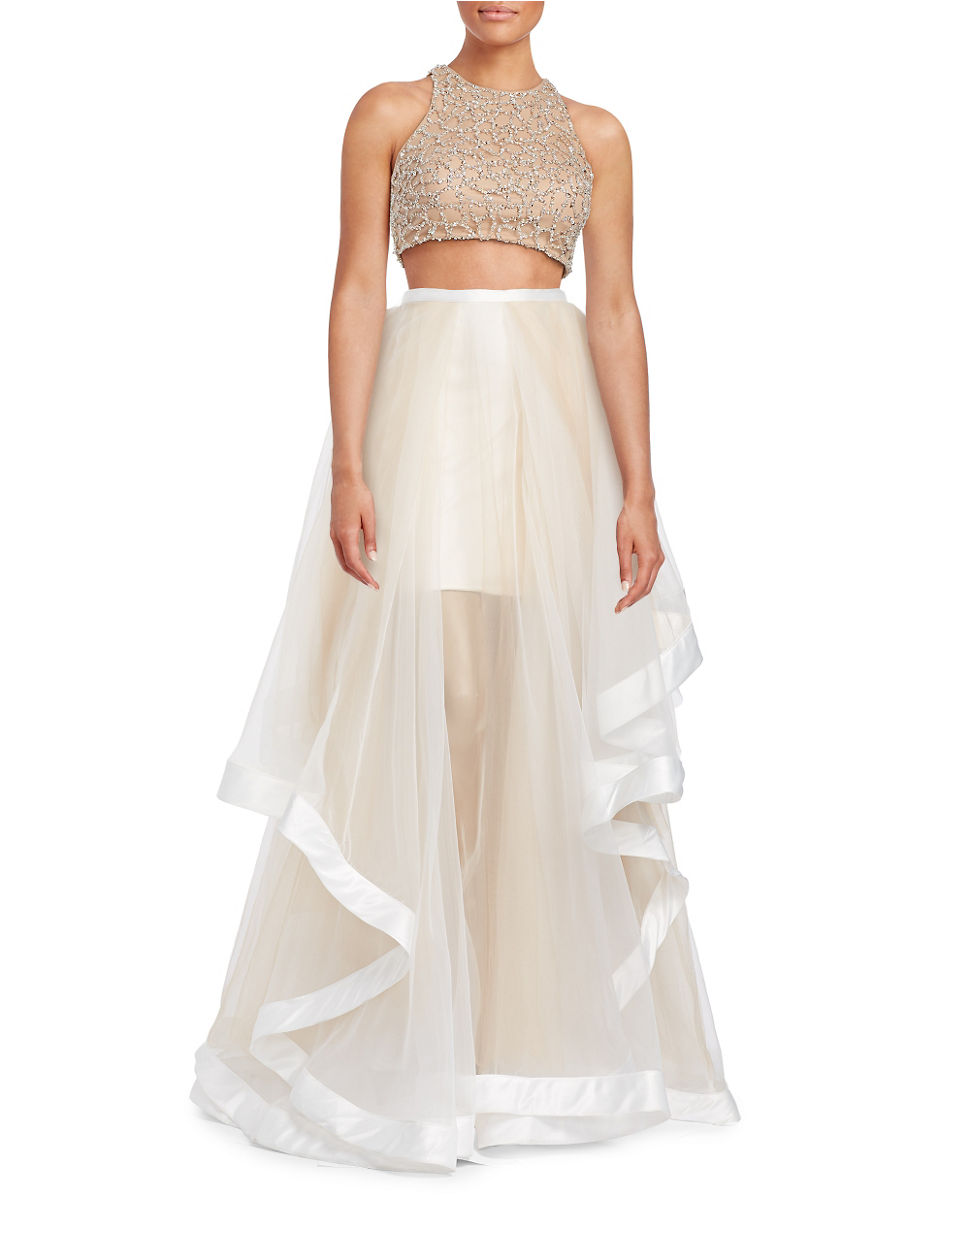 Attractive the bay prom dresses mold princess wedding for Consignment wedding dresses bay area